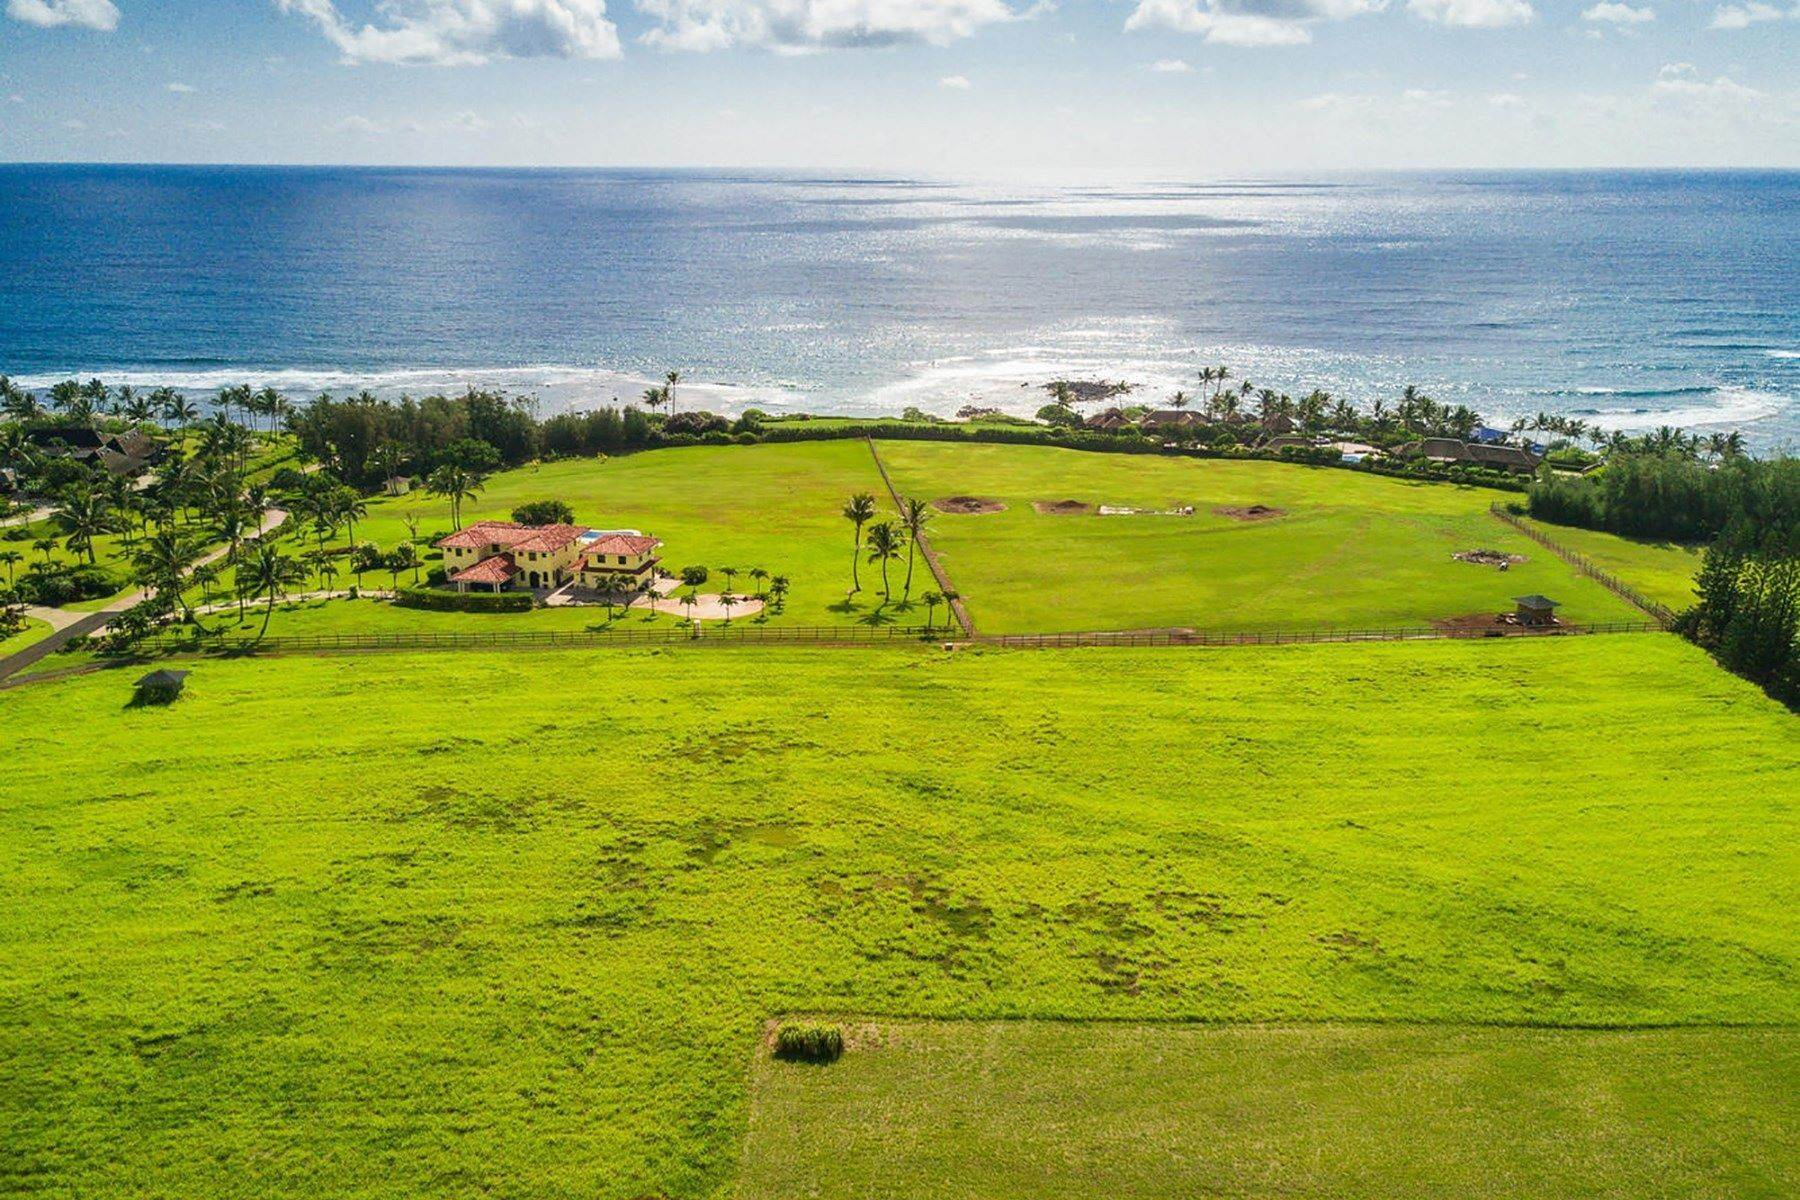 Land for Sale at 5310--7C KALALEA VIEW DR #7C ANAHOLA, HI 96703 5310--7C Kalalea View Dr #7C Anahola, Hawaii 96703 United States